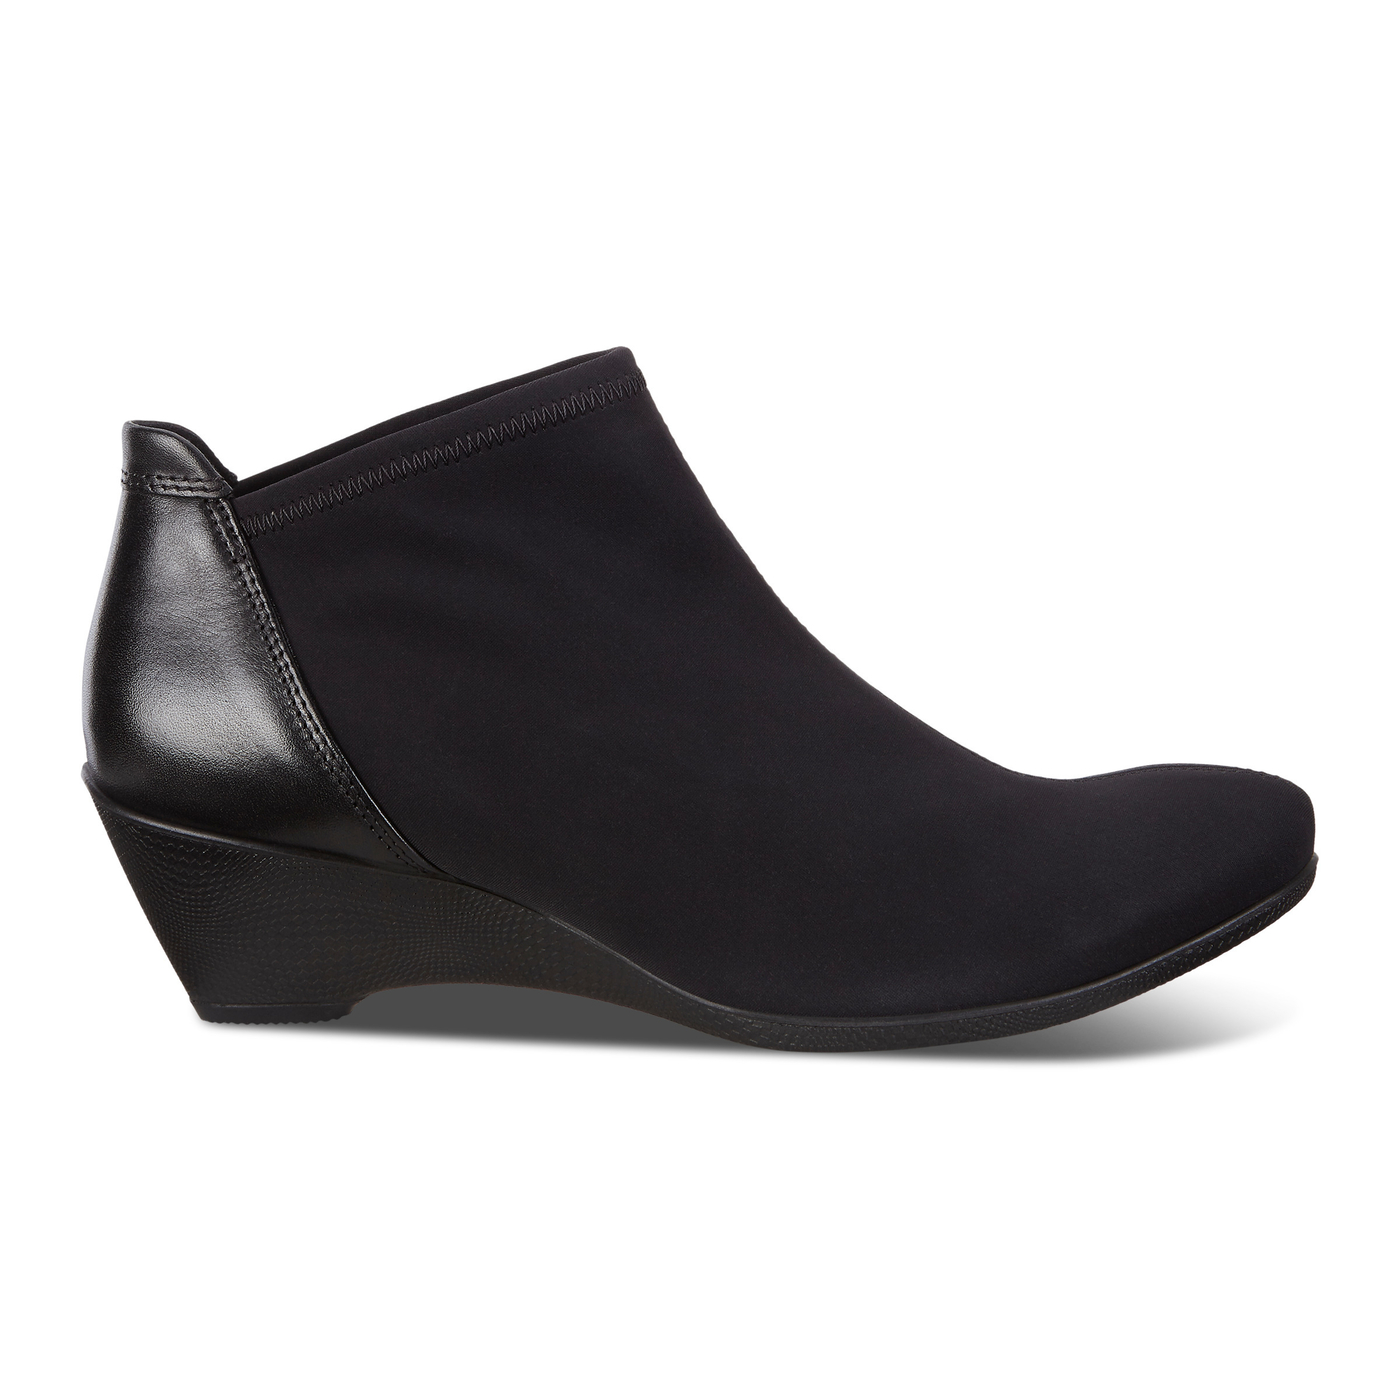 ECCO SCULPTURED 45 W Ankle Boot